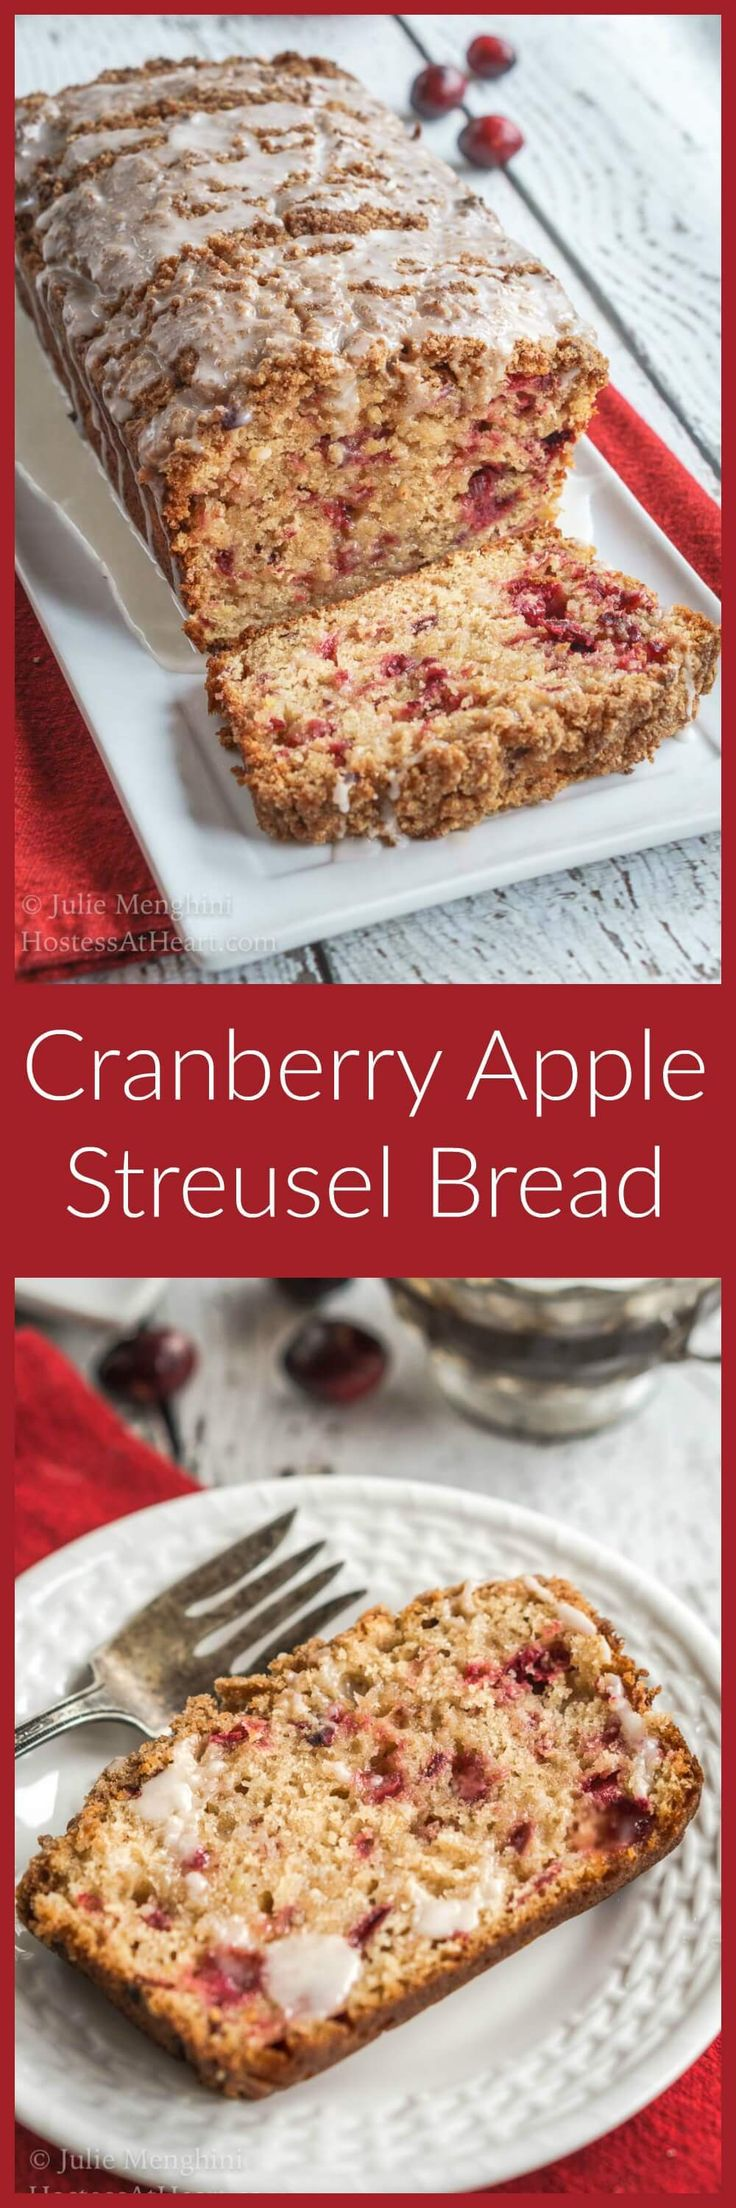 Cranberry Apple Streusel Bread has a delicious soft center dotted with cranberry and apple. This bread is topped with a thick cinnamon brown sugar streusel. | HostessAtHeart.com